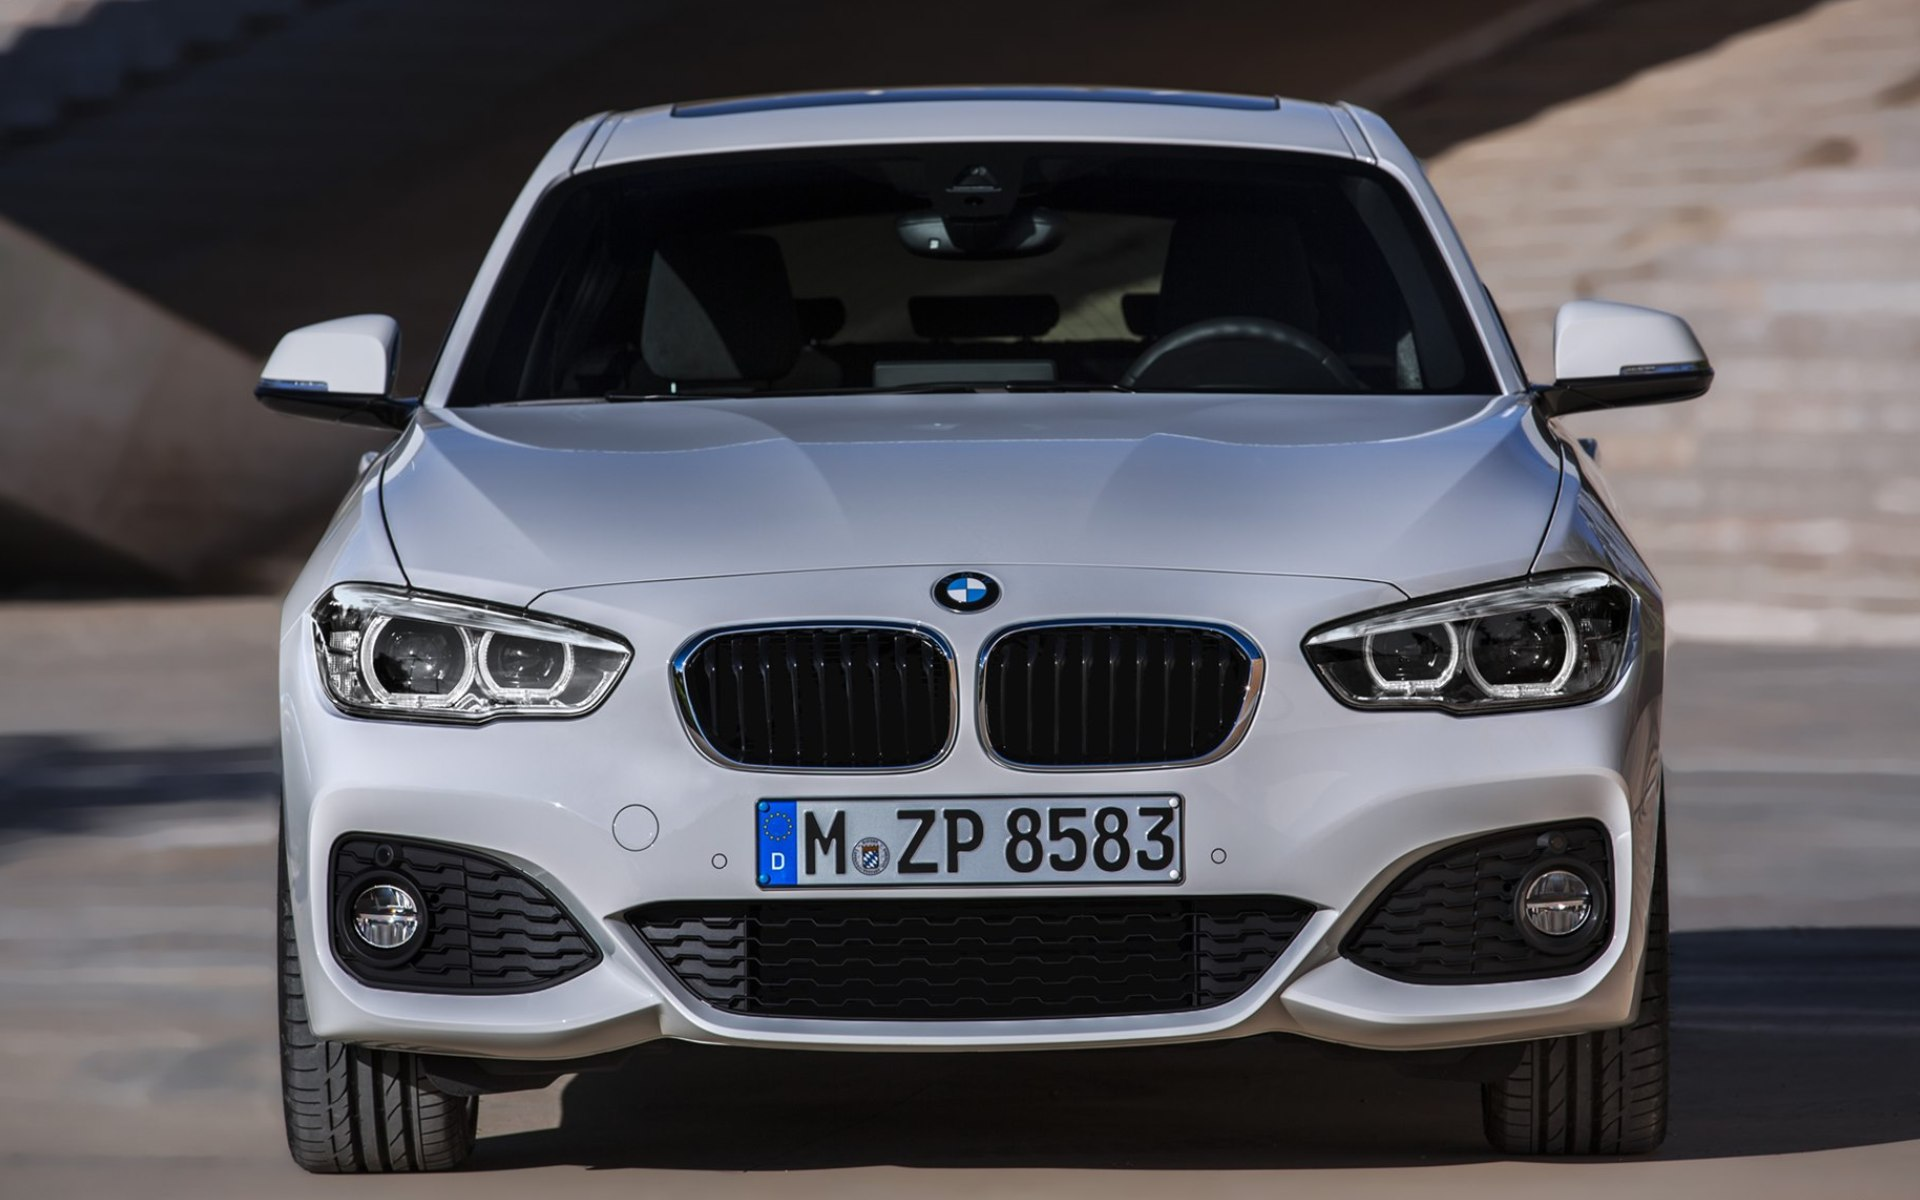 2019 BMW 1 Series 5 door photo - 4